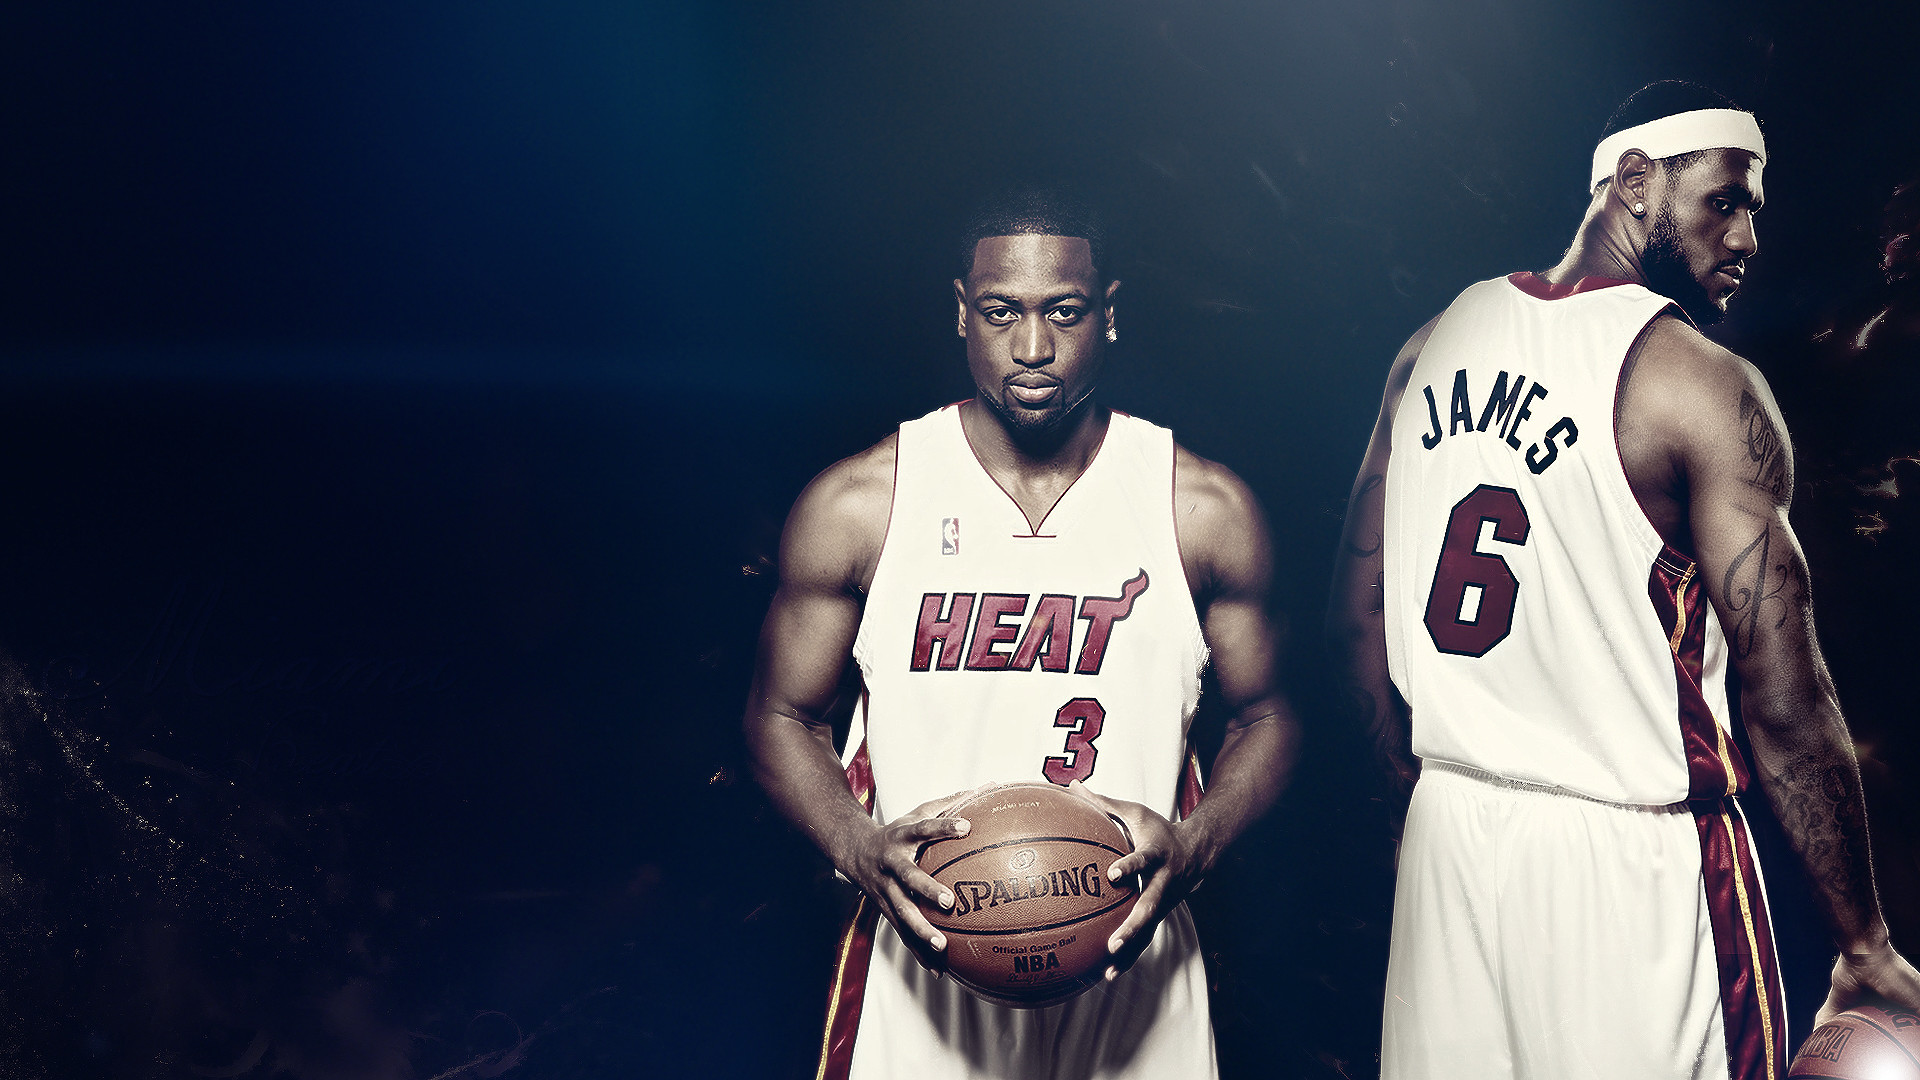 1920x1080  Wallpaper lebron james, dwyane wade, basketball, nba, heat,  spalding,